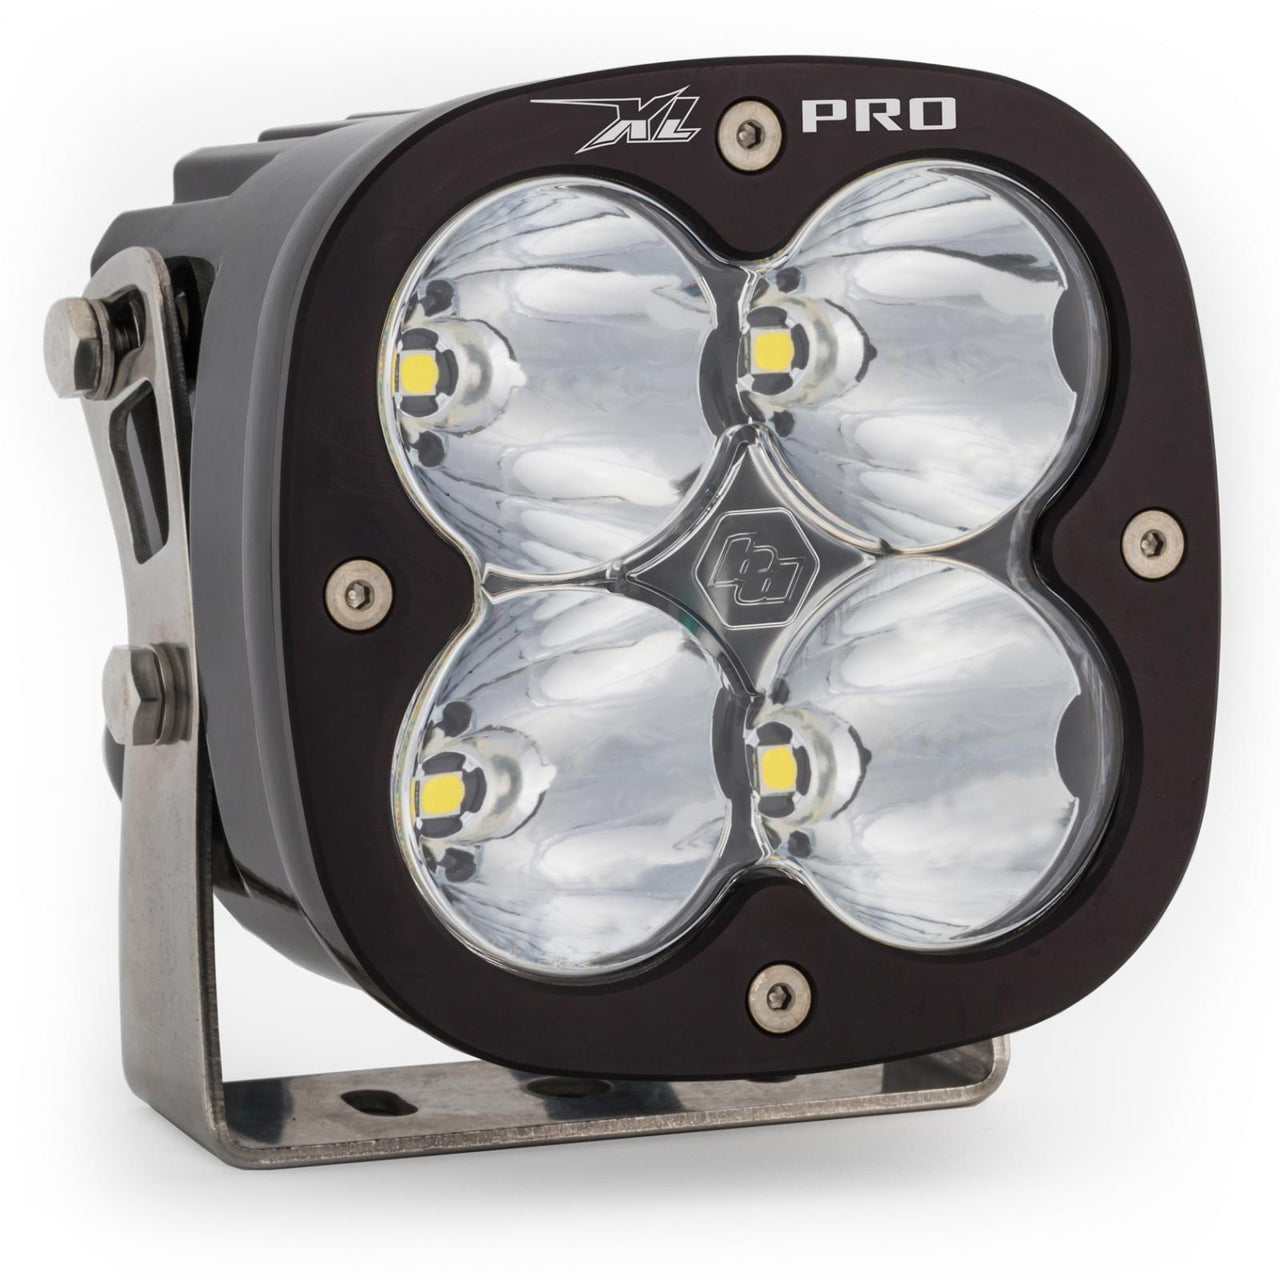 LED Light Pods Clear Lens Spot Pair XL Pro High Speed Baja Designs